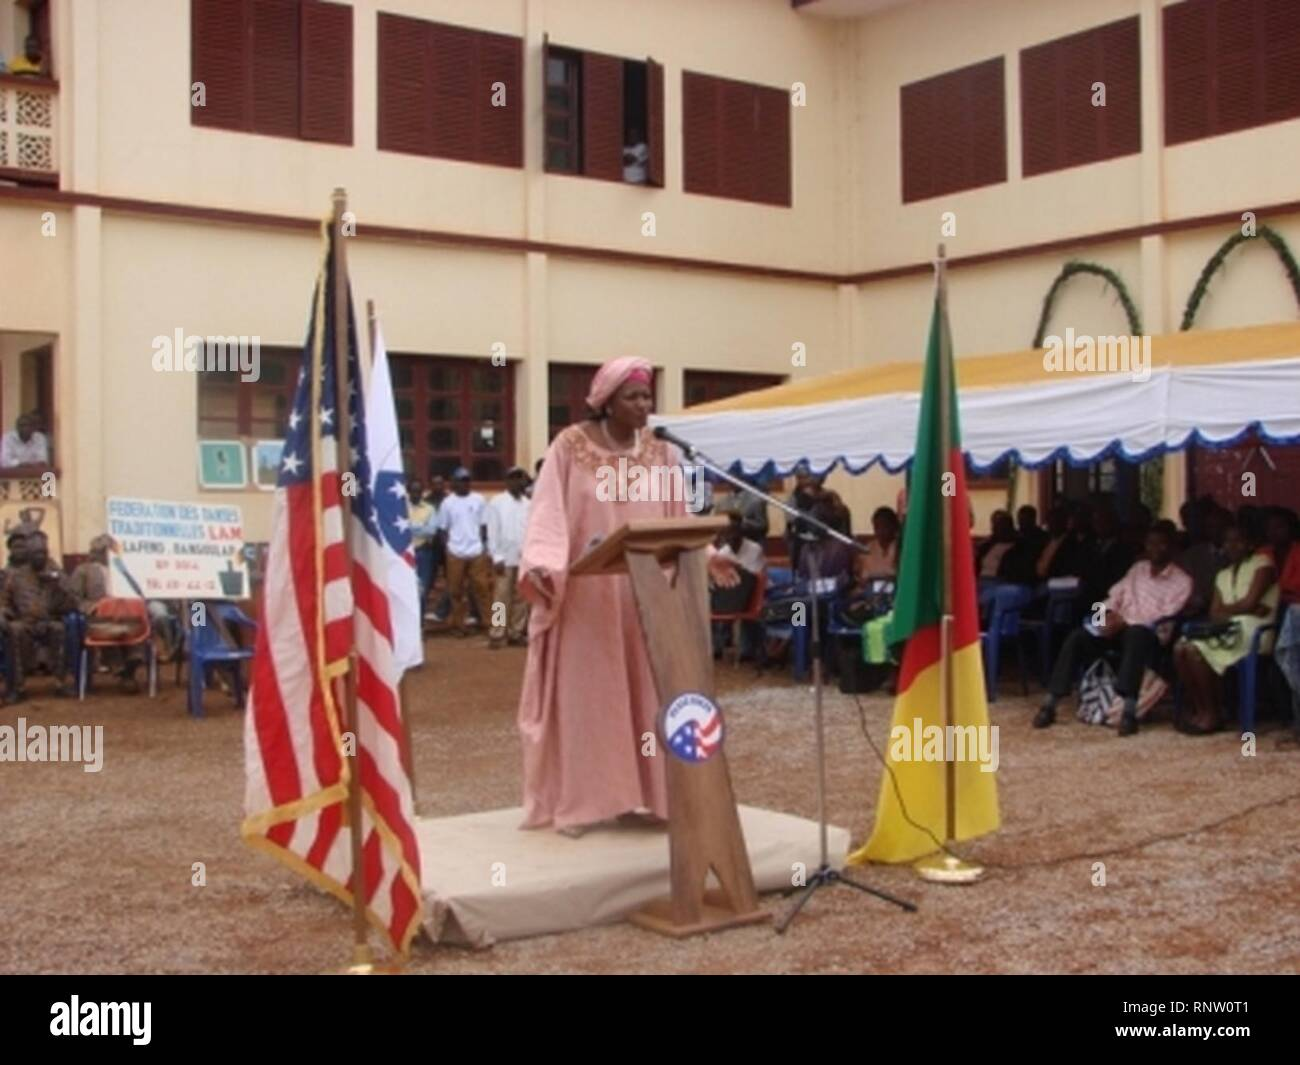 Celestine Ketcha Courtes at Peace Corps ceremony. - Stock Image